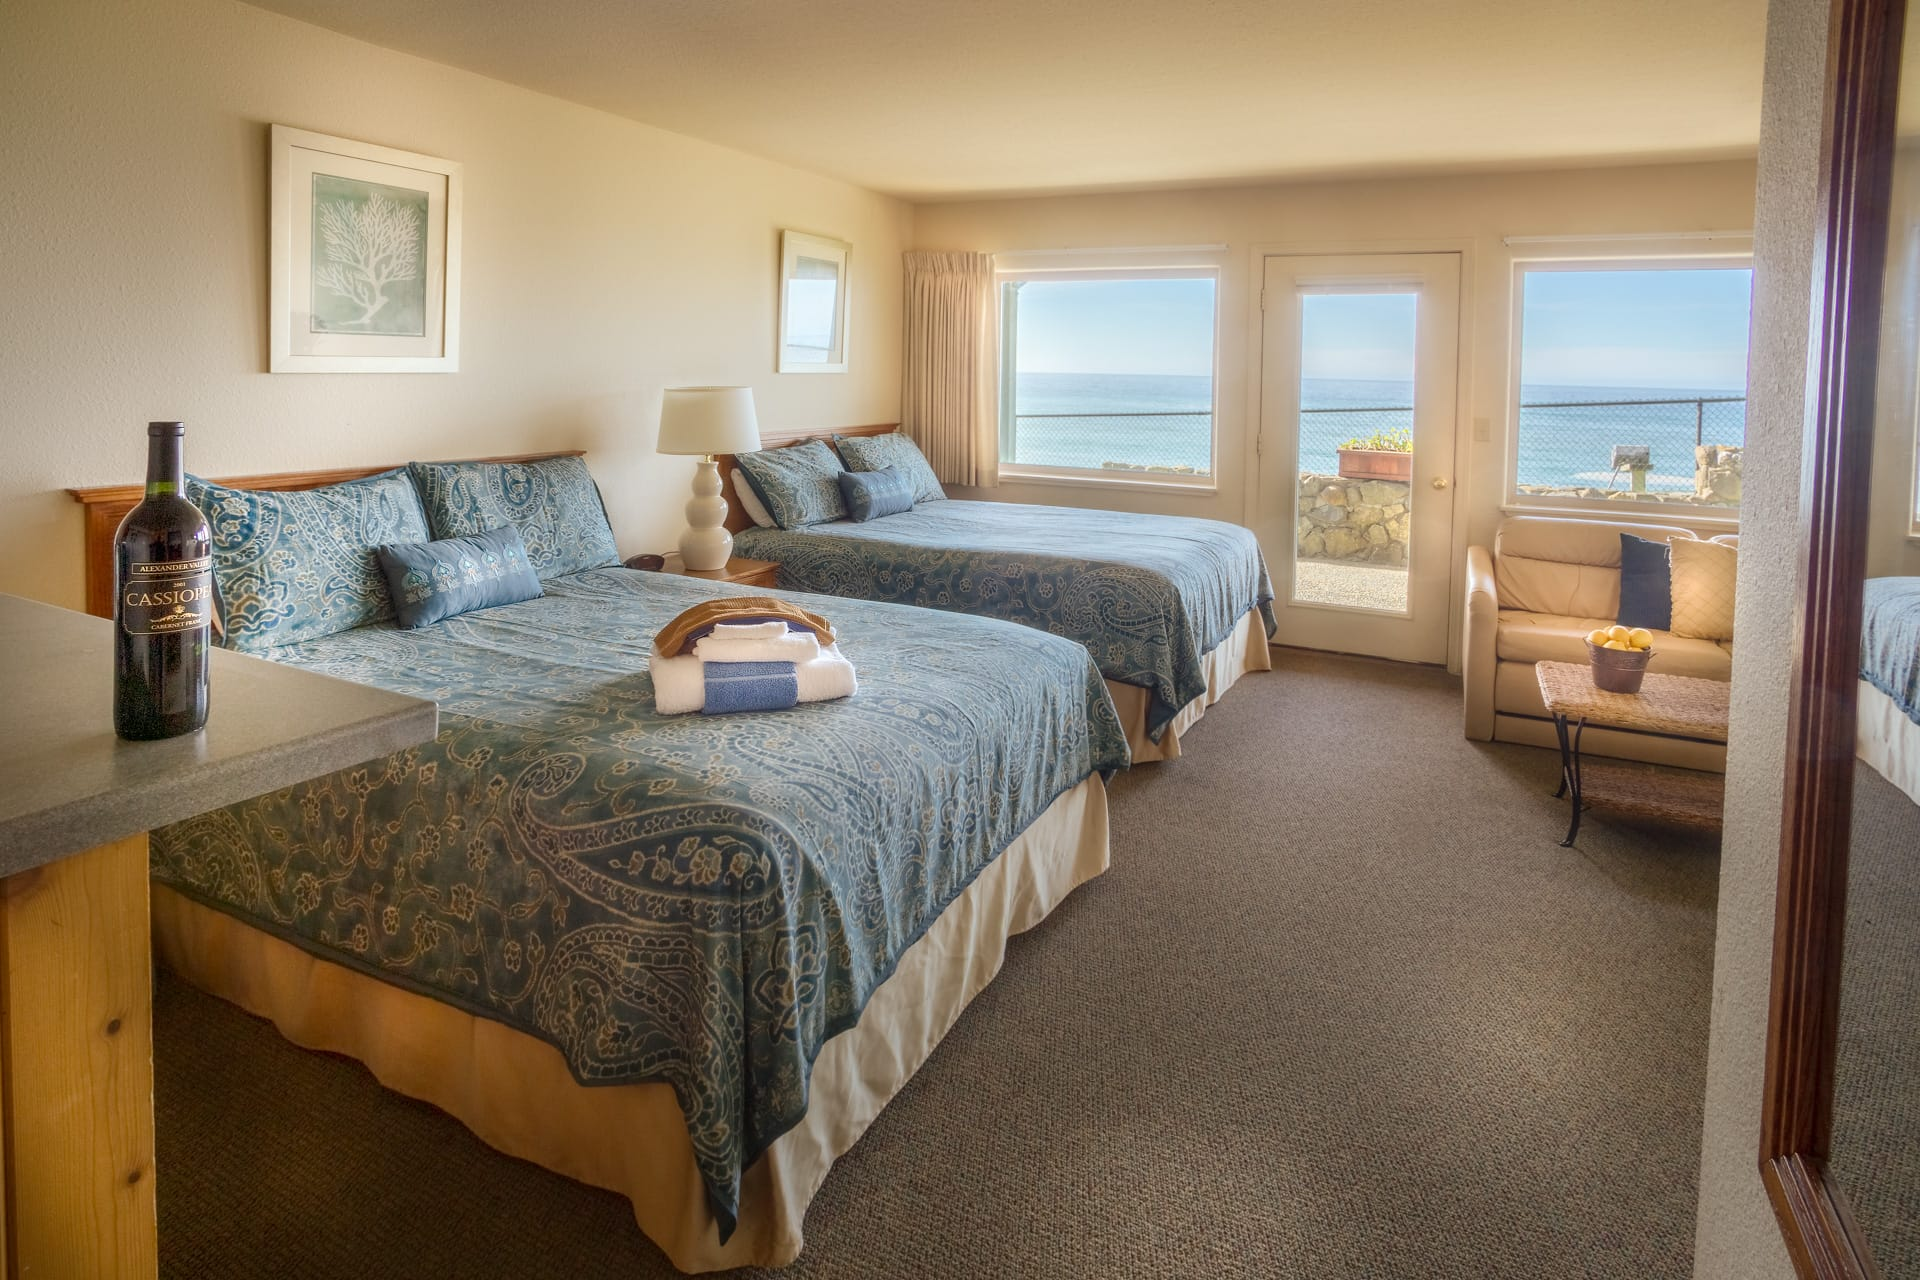 Double Queen Mini Suite oceanfront hotel room at Inn of the Lost Coast Shelter Cove with two Queen size beds, love seat sofa couch, coffee table, extended stay kitchenette, and patio with panoramic views of Shelter Cove rocky shorline.